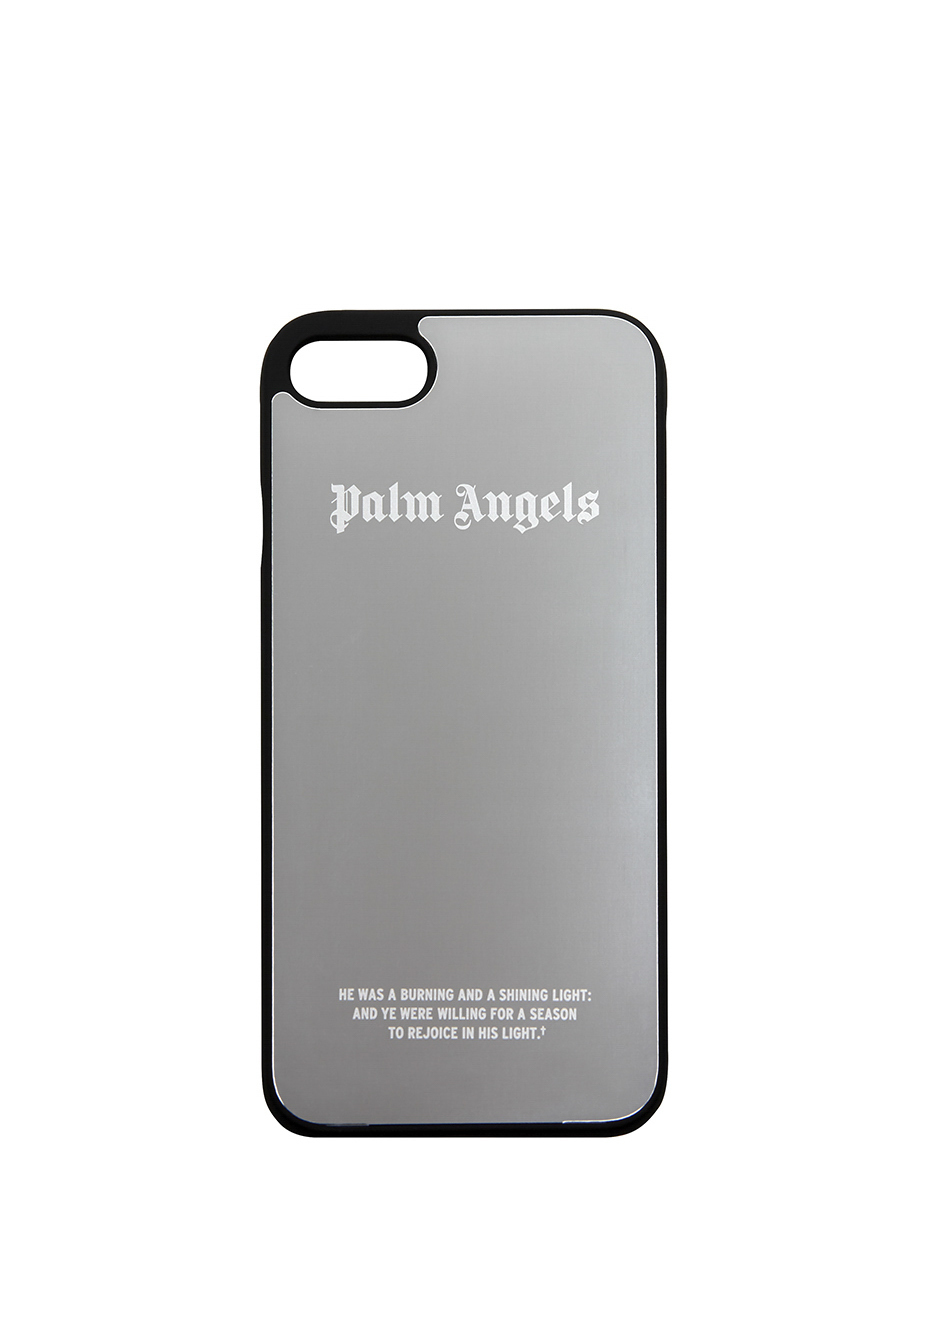 特価!Palm Angels☆METALLIC COVER IPHONE 7 ケース